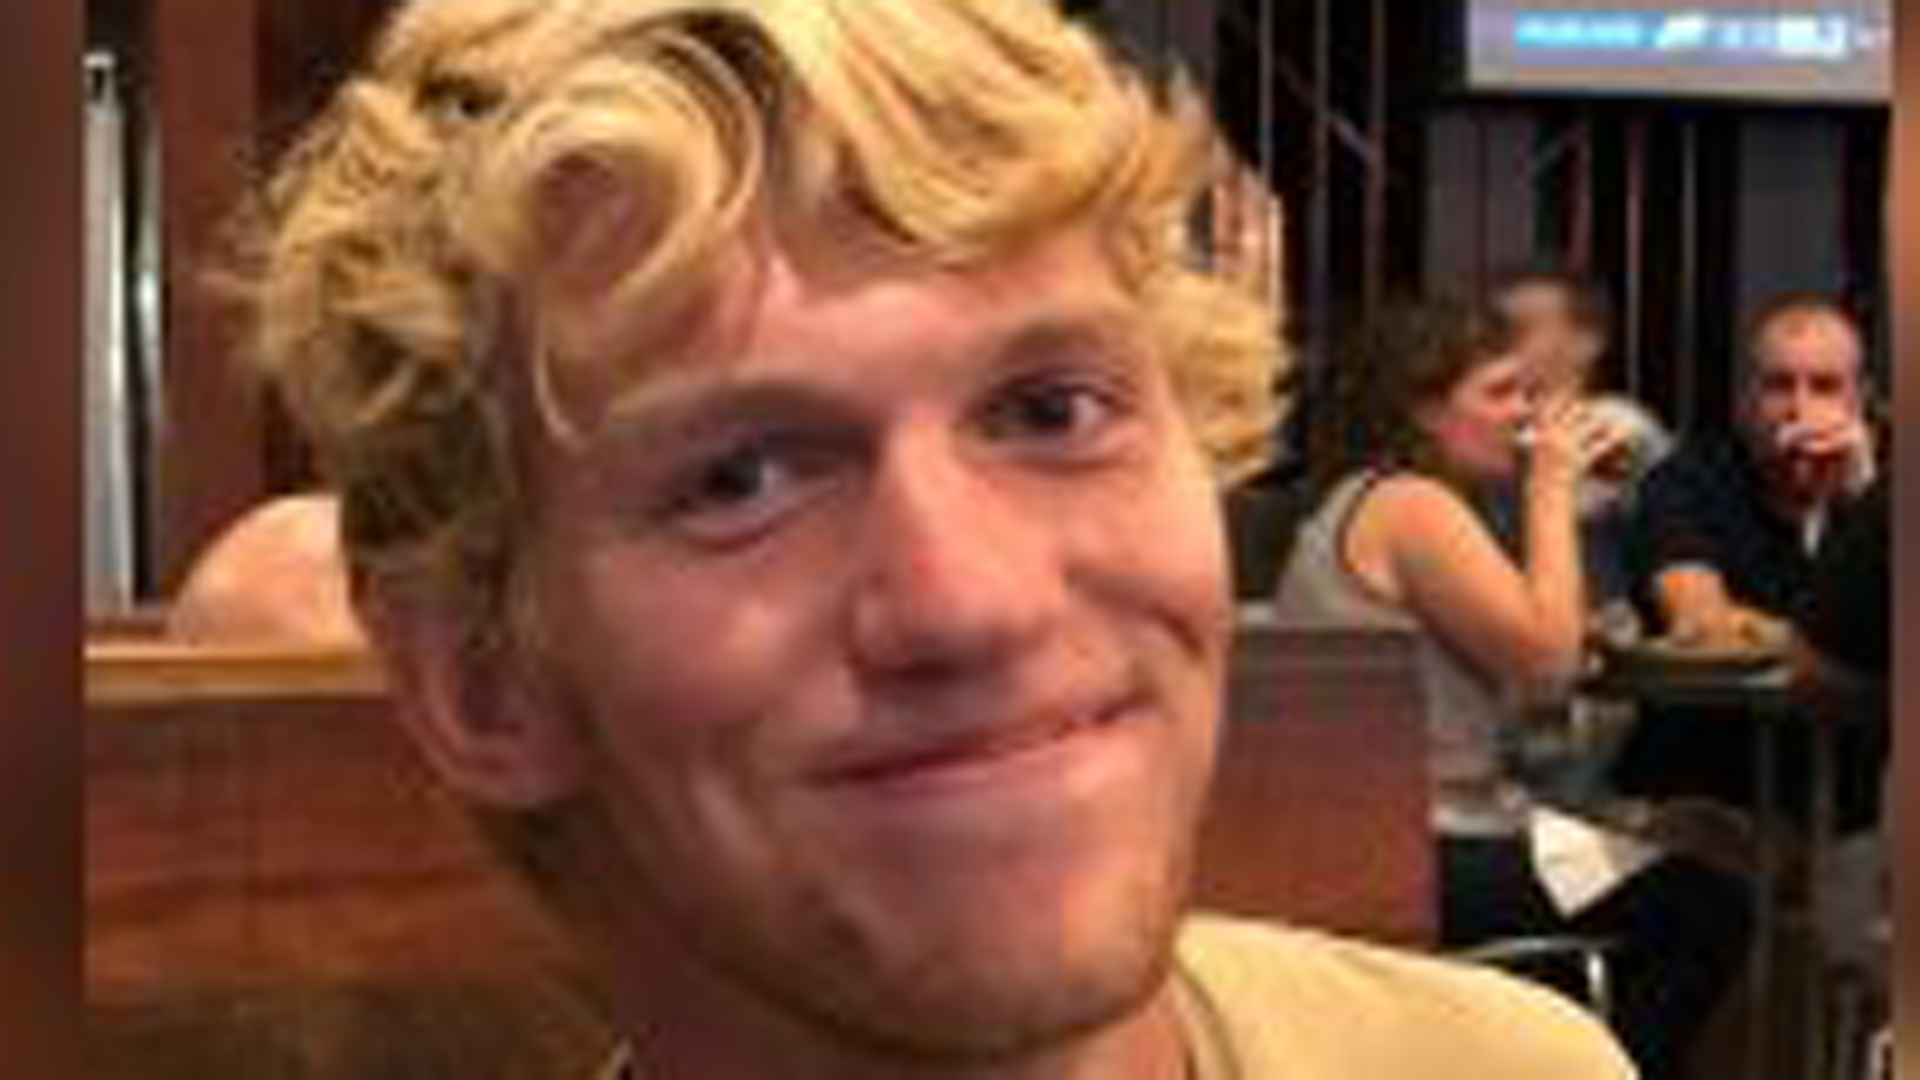 Riley Howell, 21, is seen in an undated photo provided to CNN by Morgan Howell Moylan.